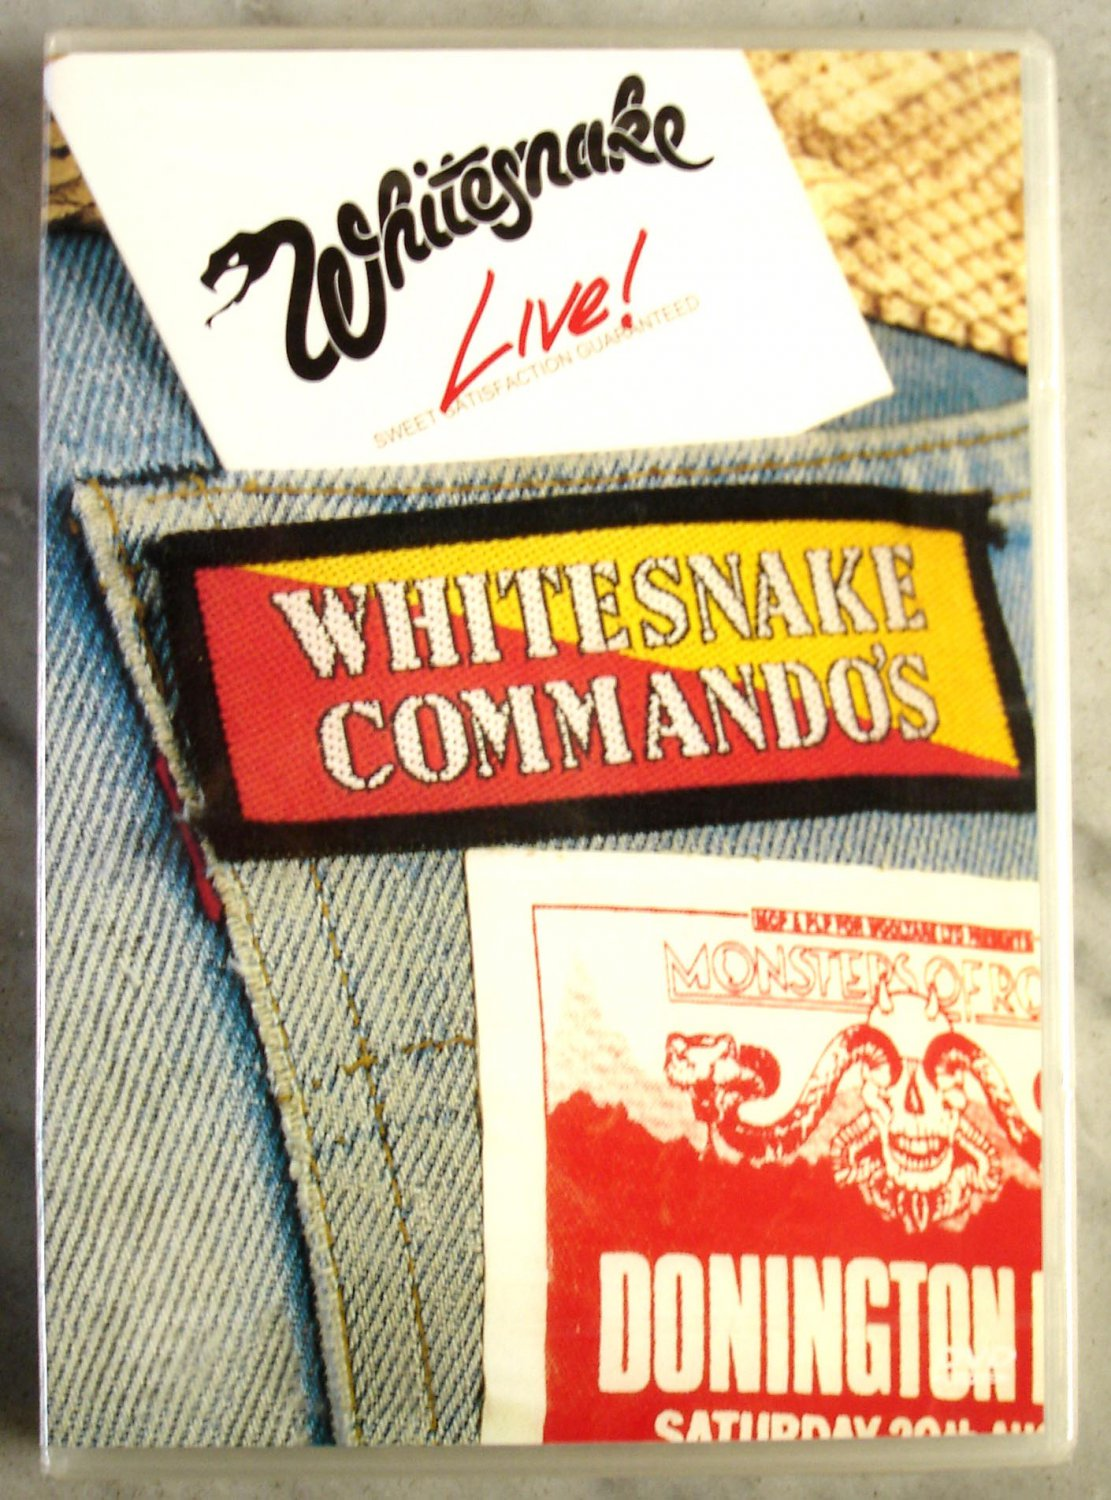 Whitesnake Live Sweet Satisfaction Guaranteed Commando's Donington DVD